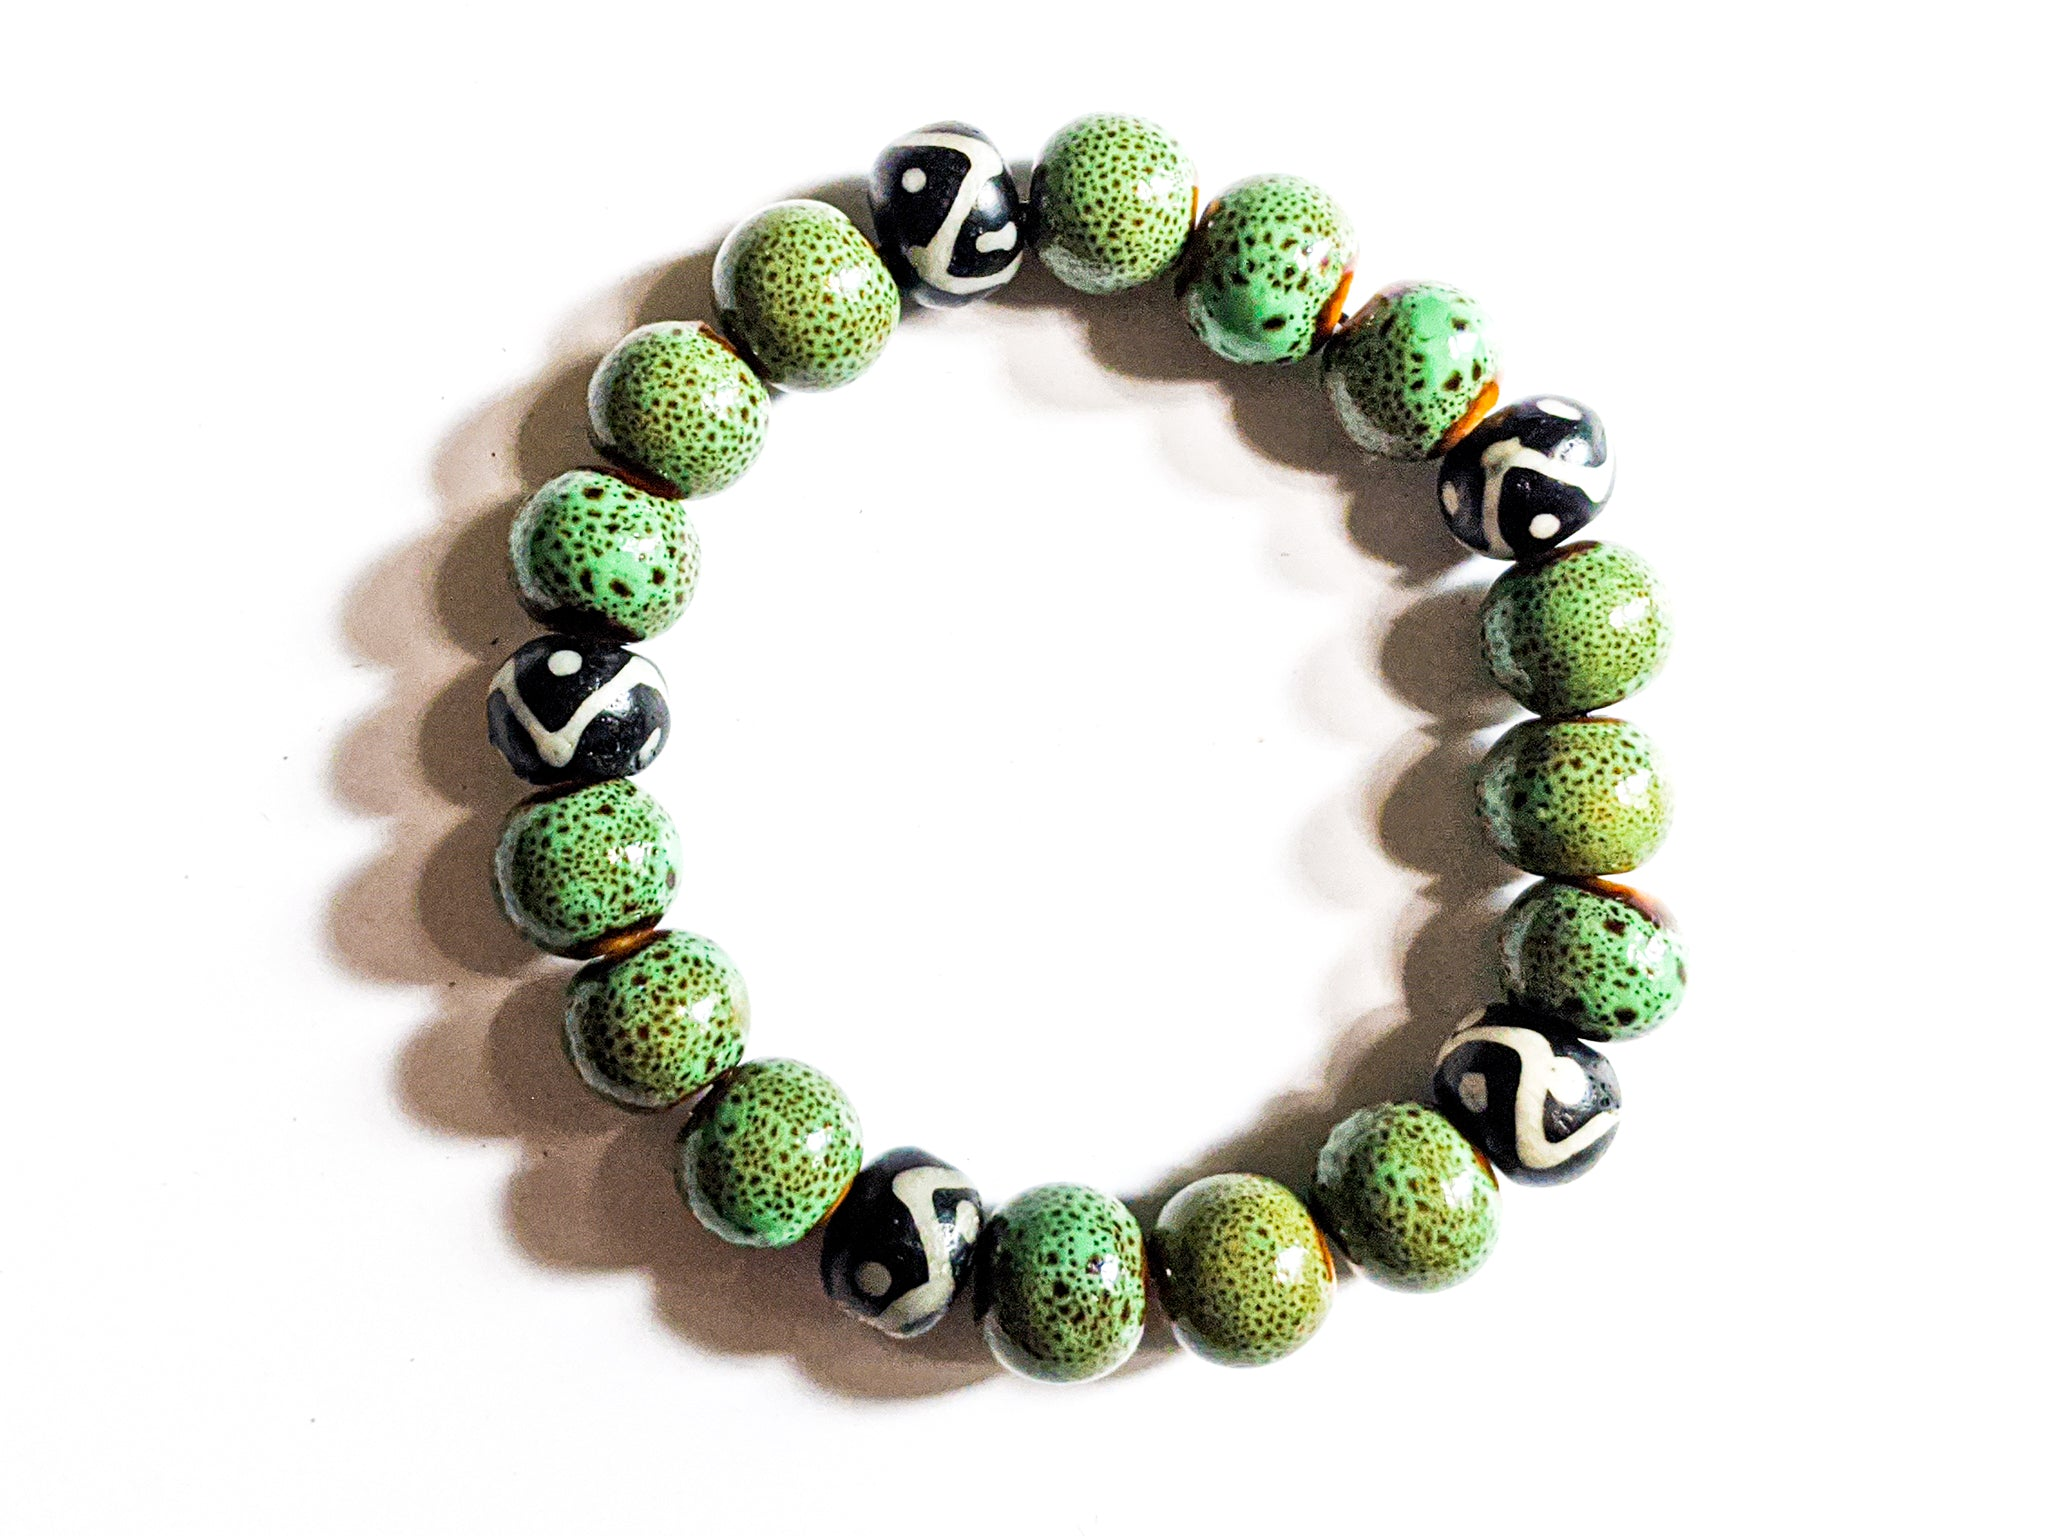 8mm Black And White African Trade | Green Ceramic | Bead Bracelet